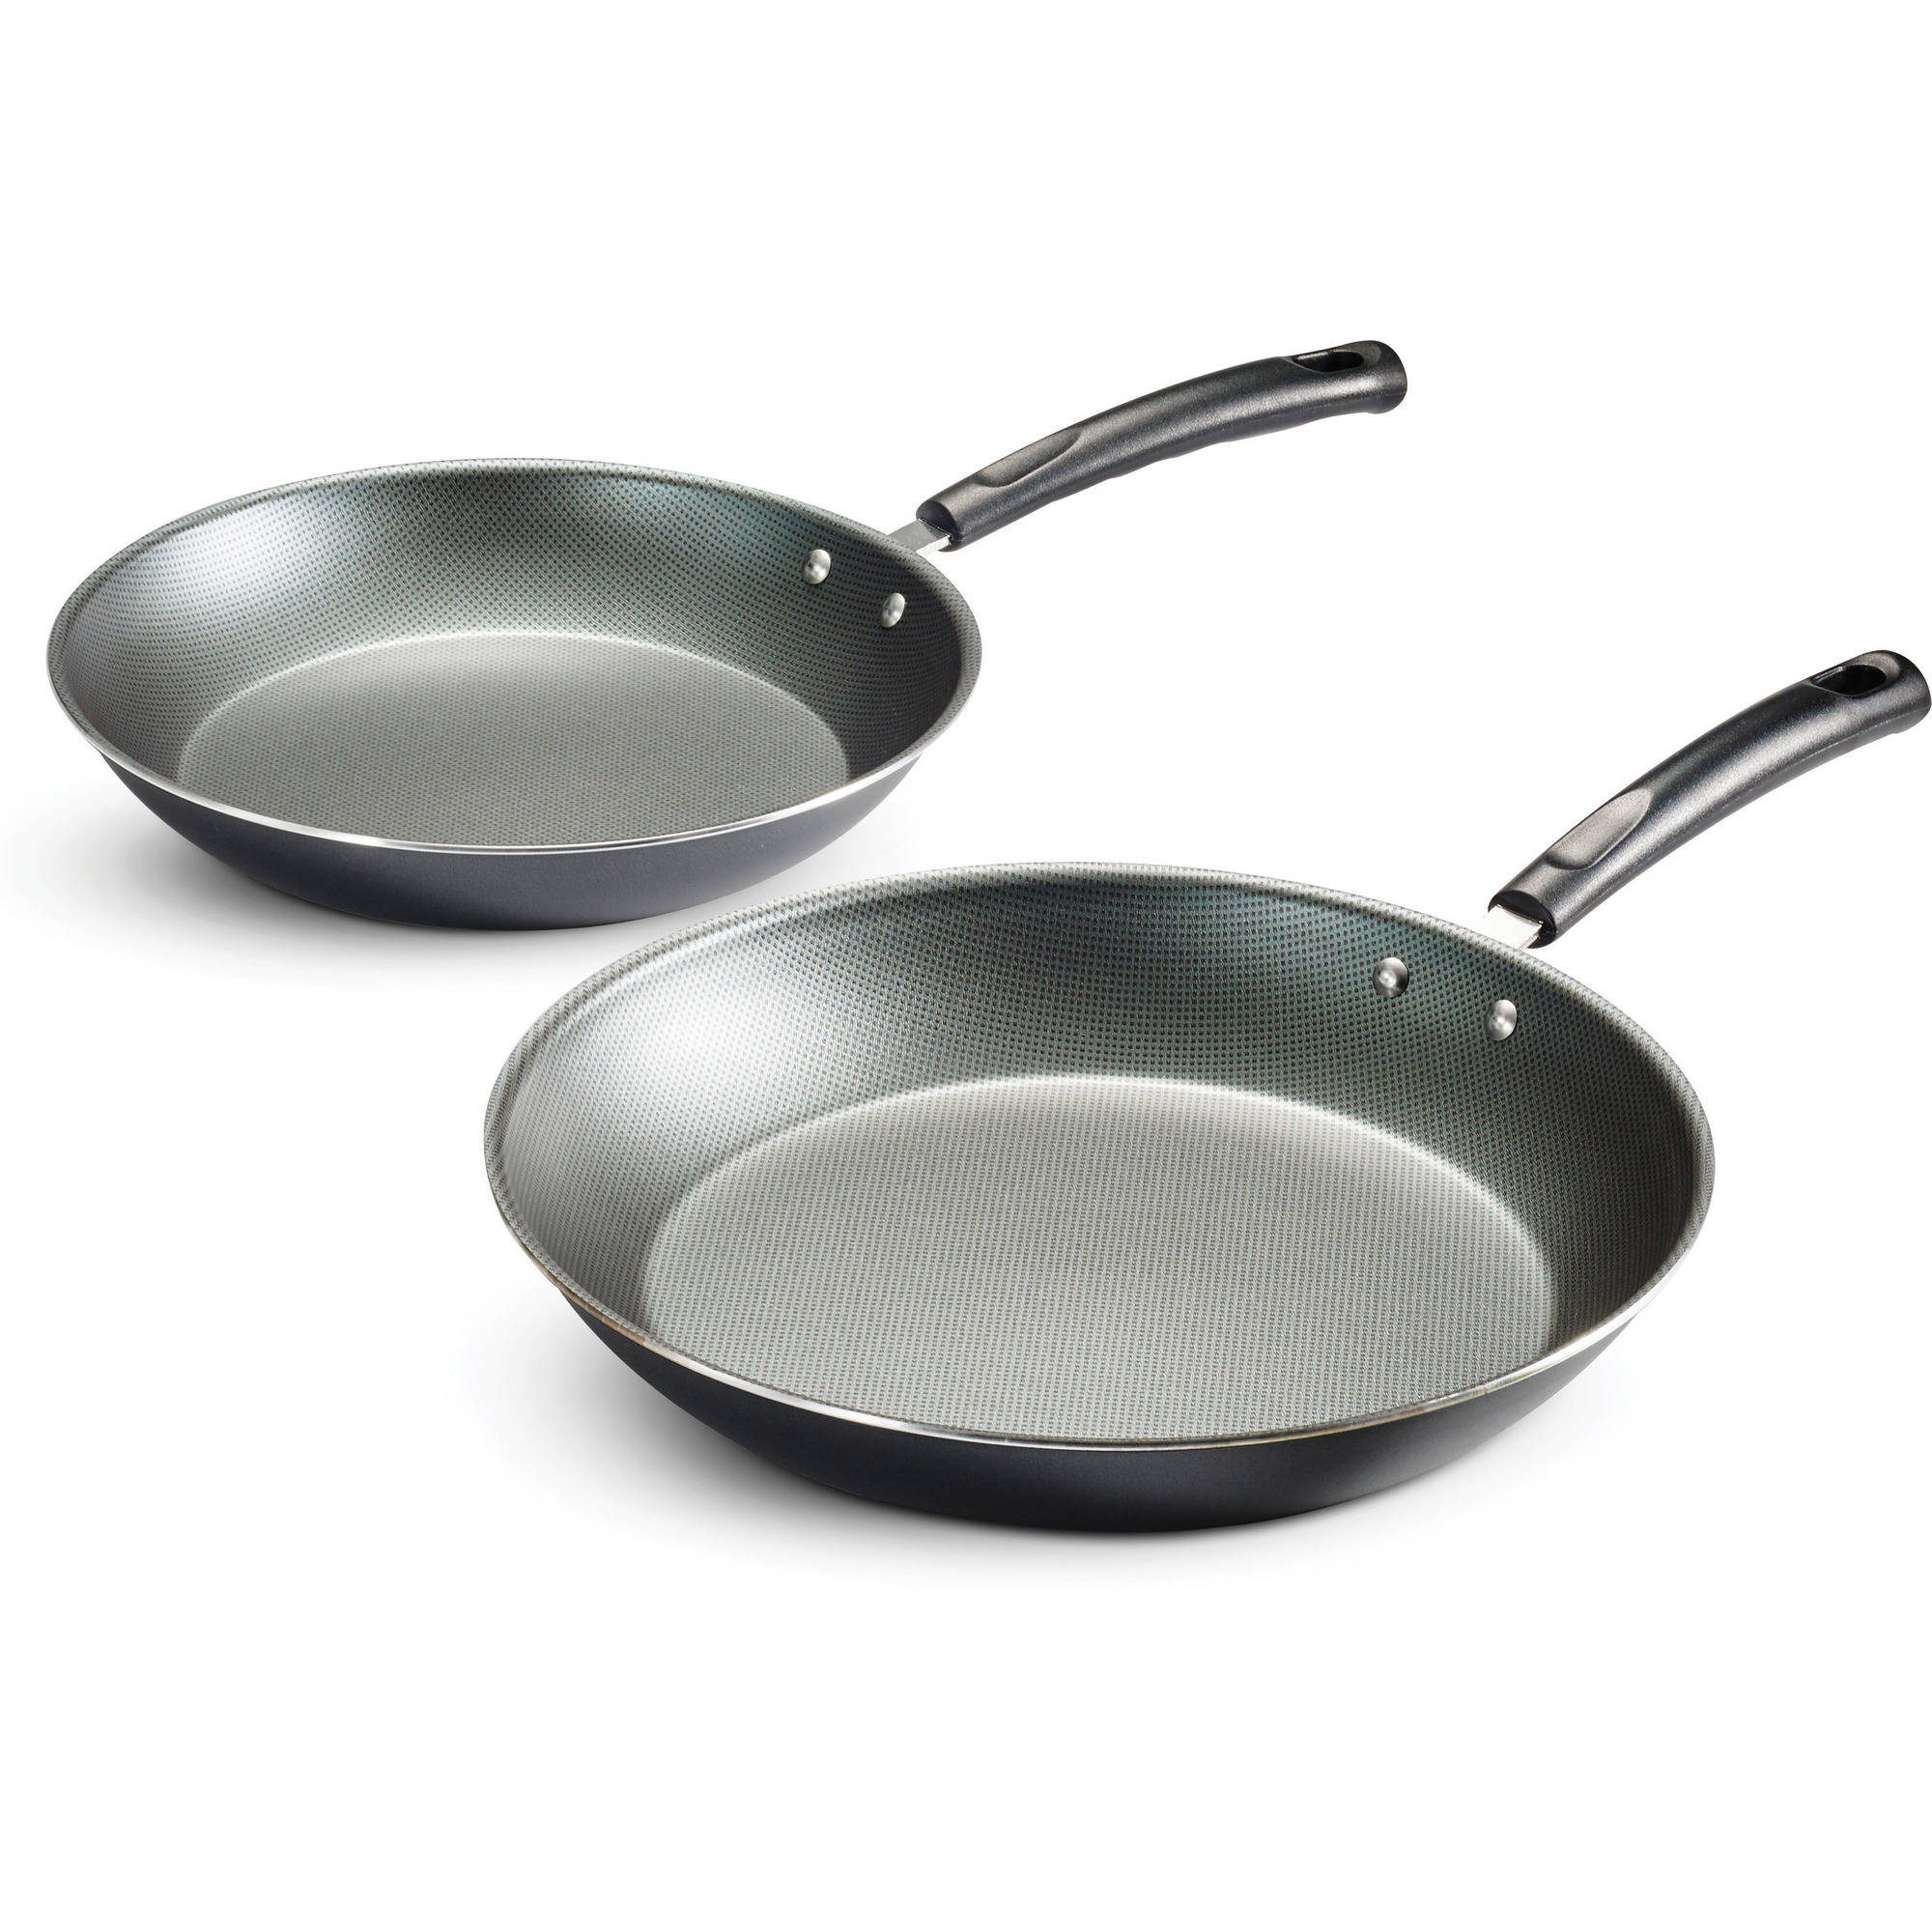 Cookware gt see more select by calphalon ceramic nonstick 8 inch an - Tramontina Primaware 2 Piece Nonstick Saute Pan Set Steel Gray